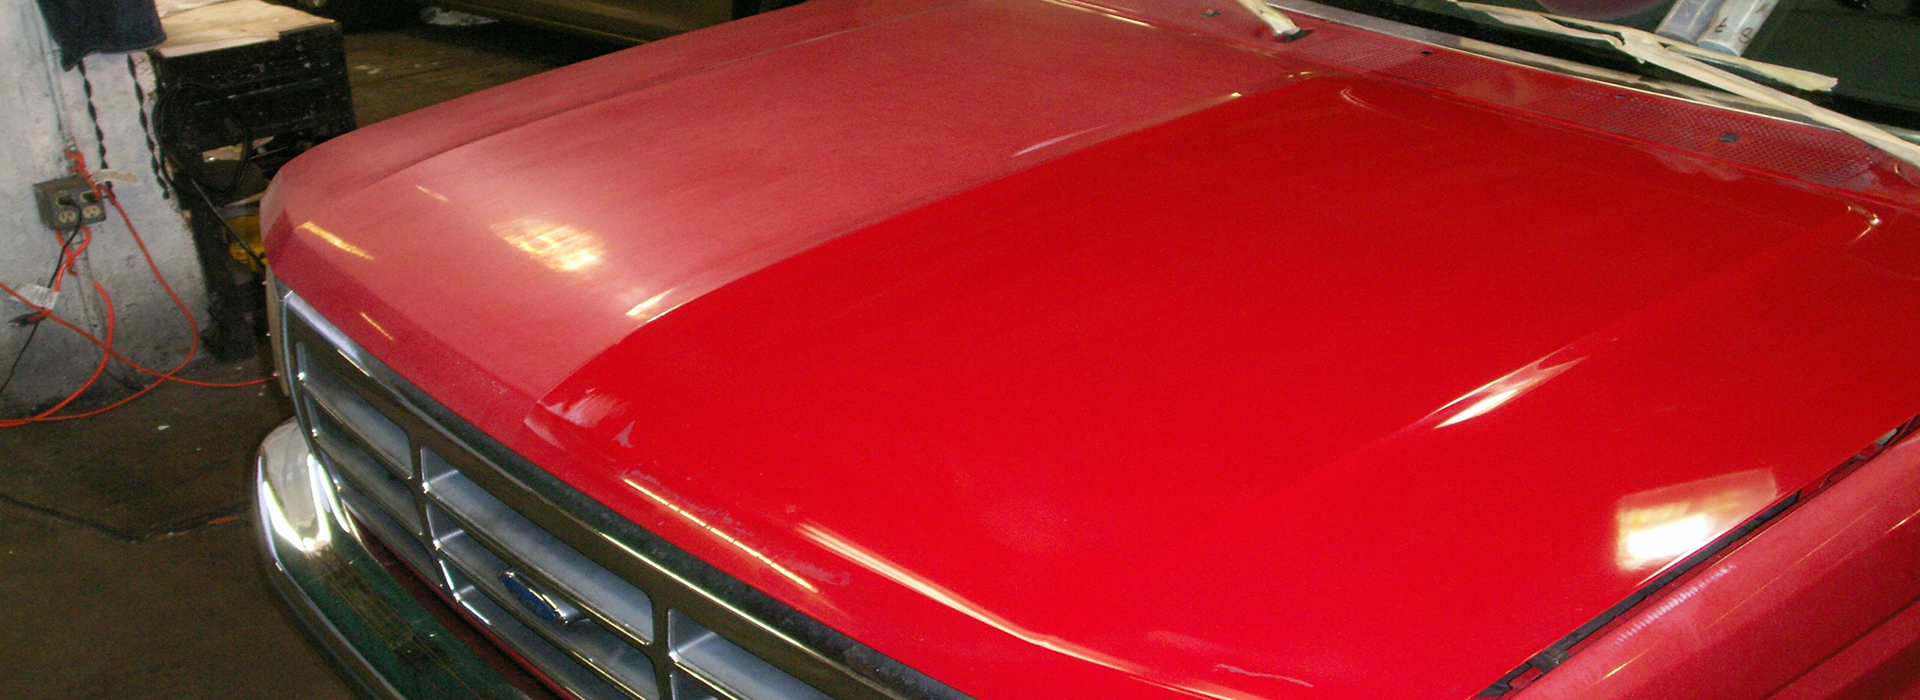 Home oakland auto detailing car wash and waxing prevnextpause solutioingenieria Image collections